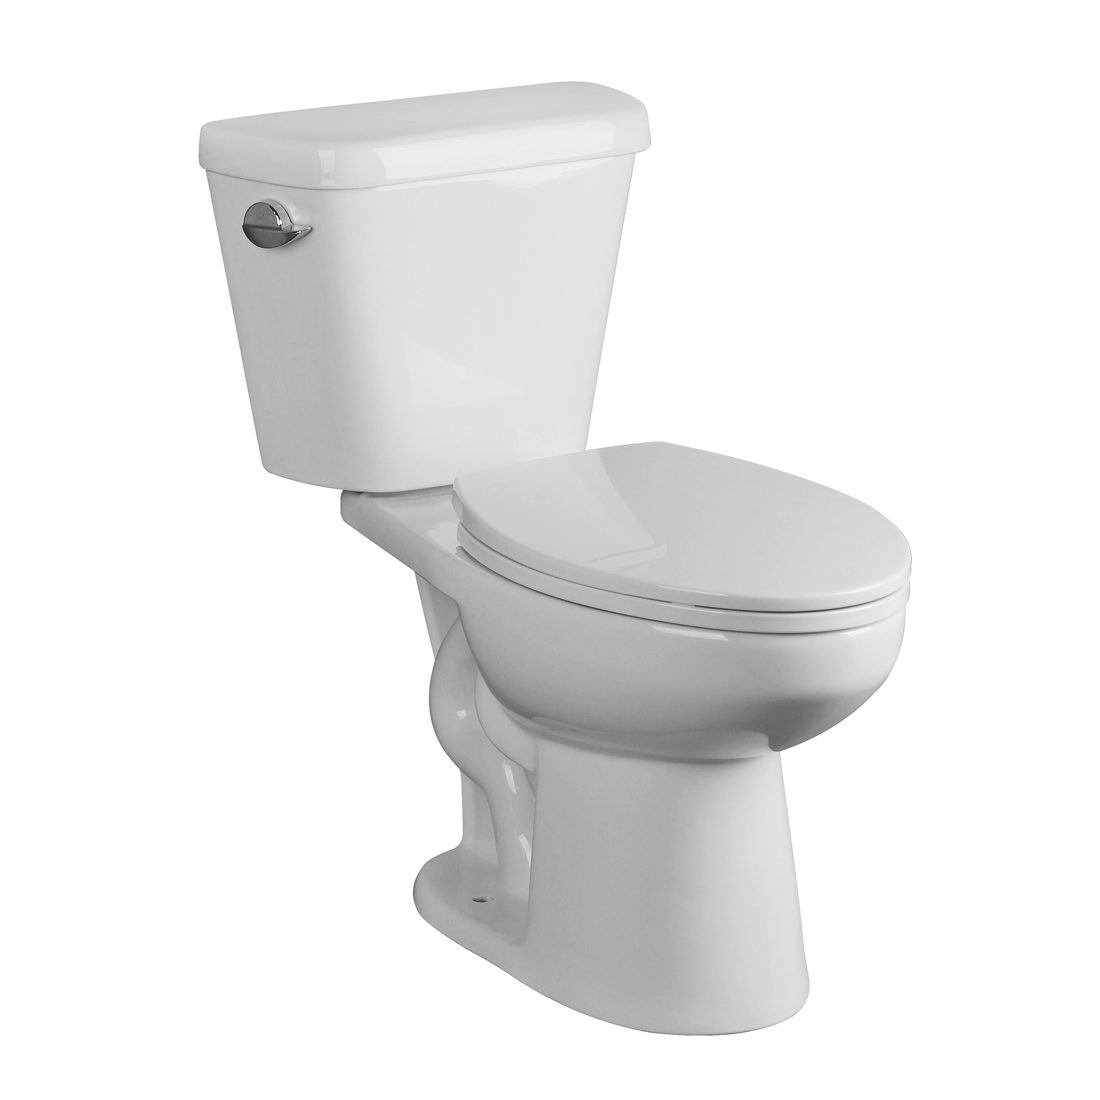 Chicago Toilet 16.5inch 3.8L White Front View